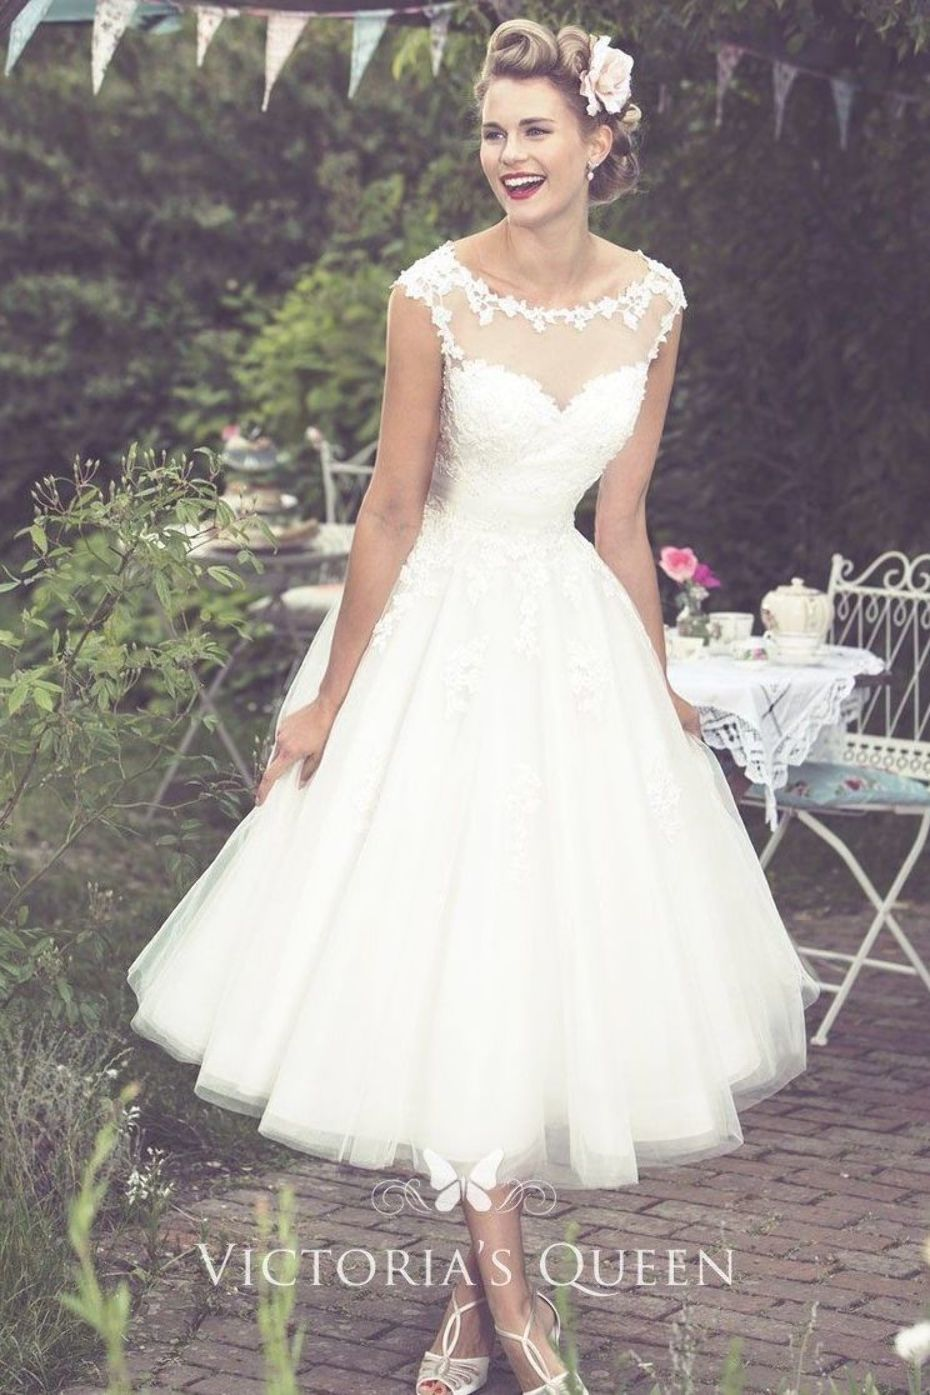 This tea length rustic wedding dress is perfect for a relaxed